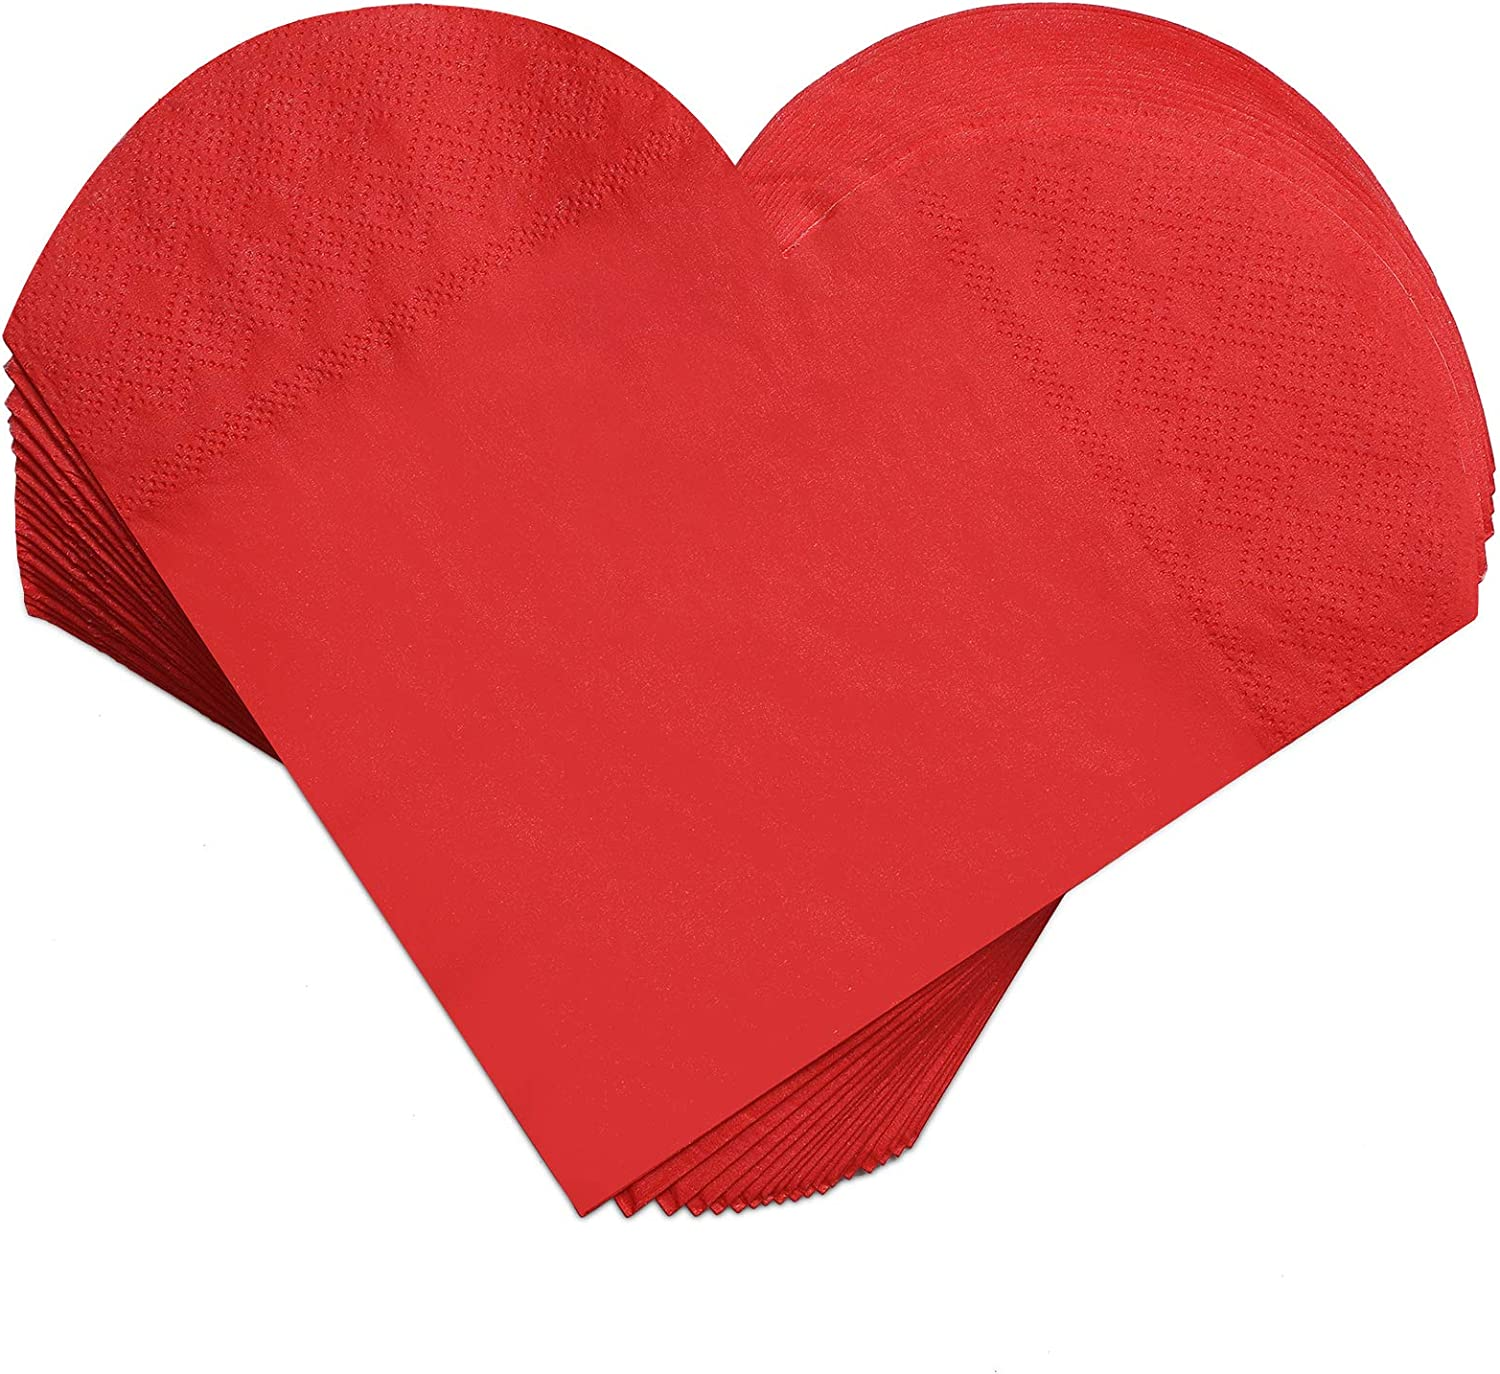 100 Pieces Heart Shaped Paper Napkins Valentine's Day Napkins Heart Beverage Tissue Napkins for Valentine's Day Wedding Party Supplies, 6.5 x 6.5 Inches, Red